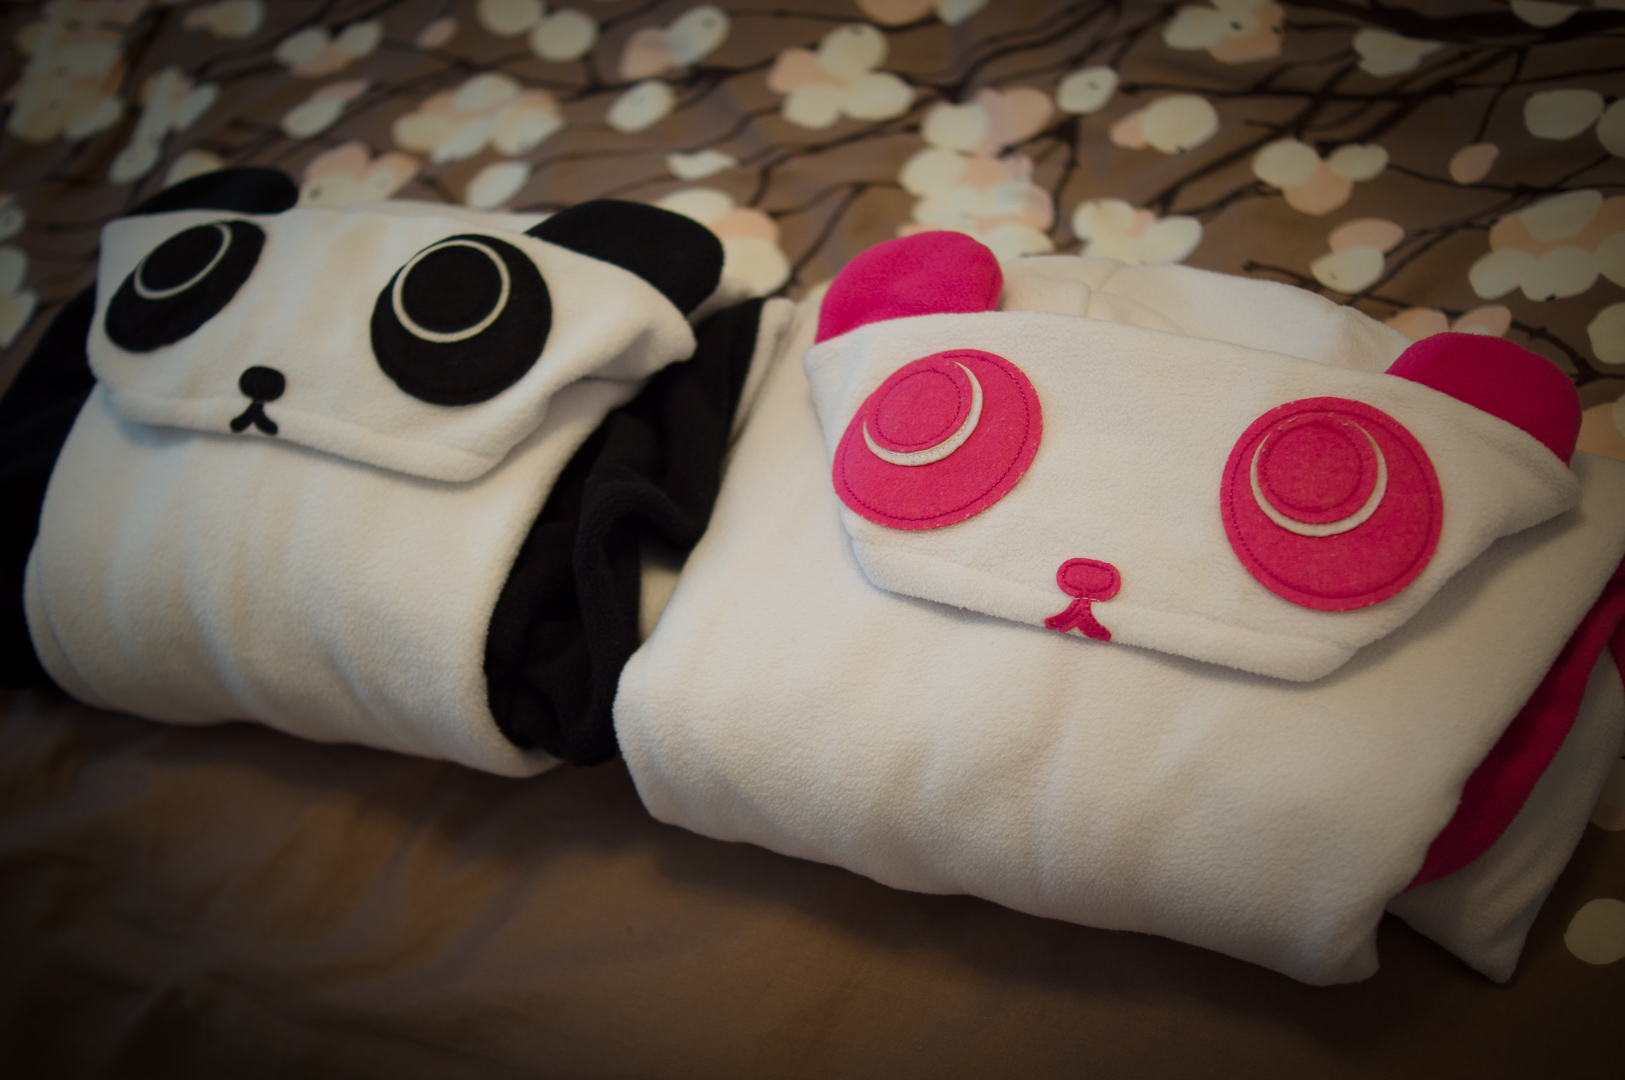 Panda jammies folded nicely into compact rectangles using the KonMari method